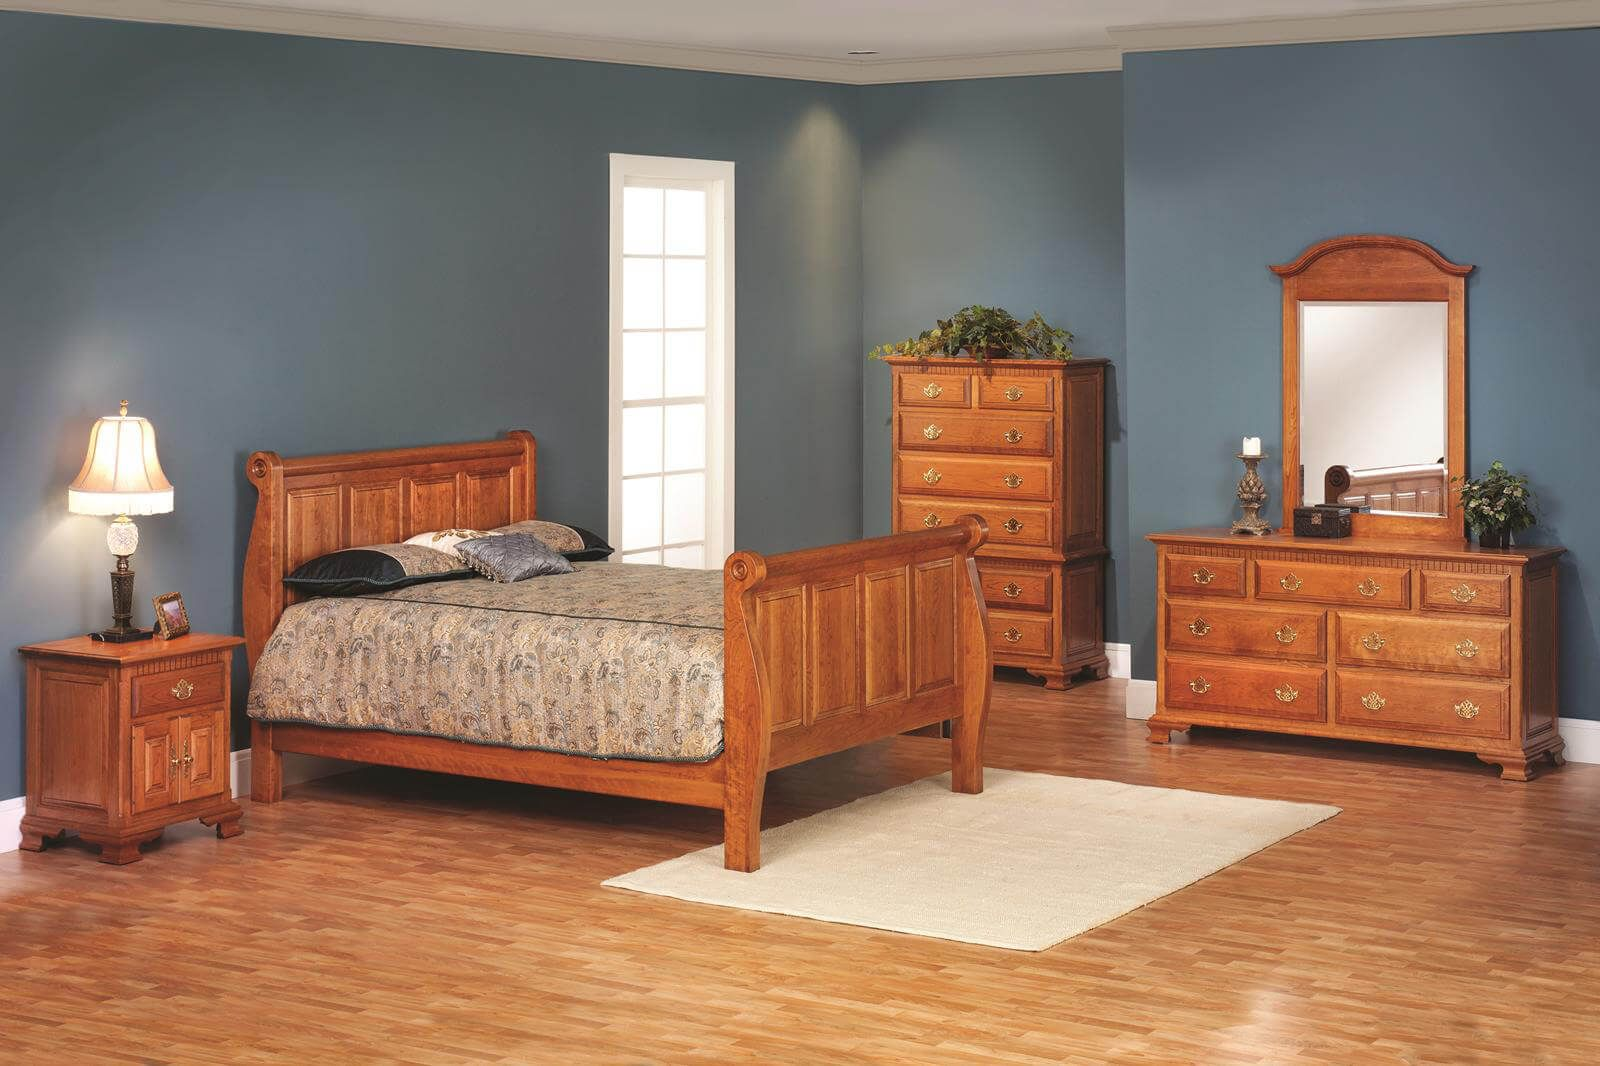 Elizabeth's Tradition Amish Bedroom Furniture Set